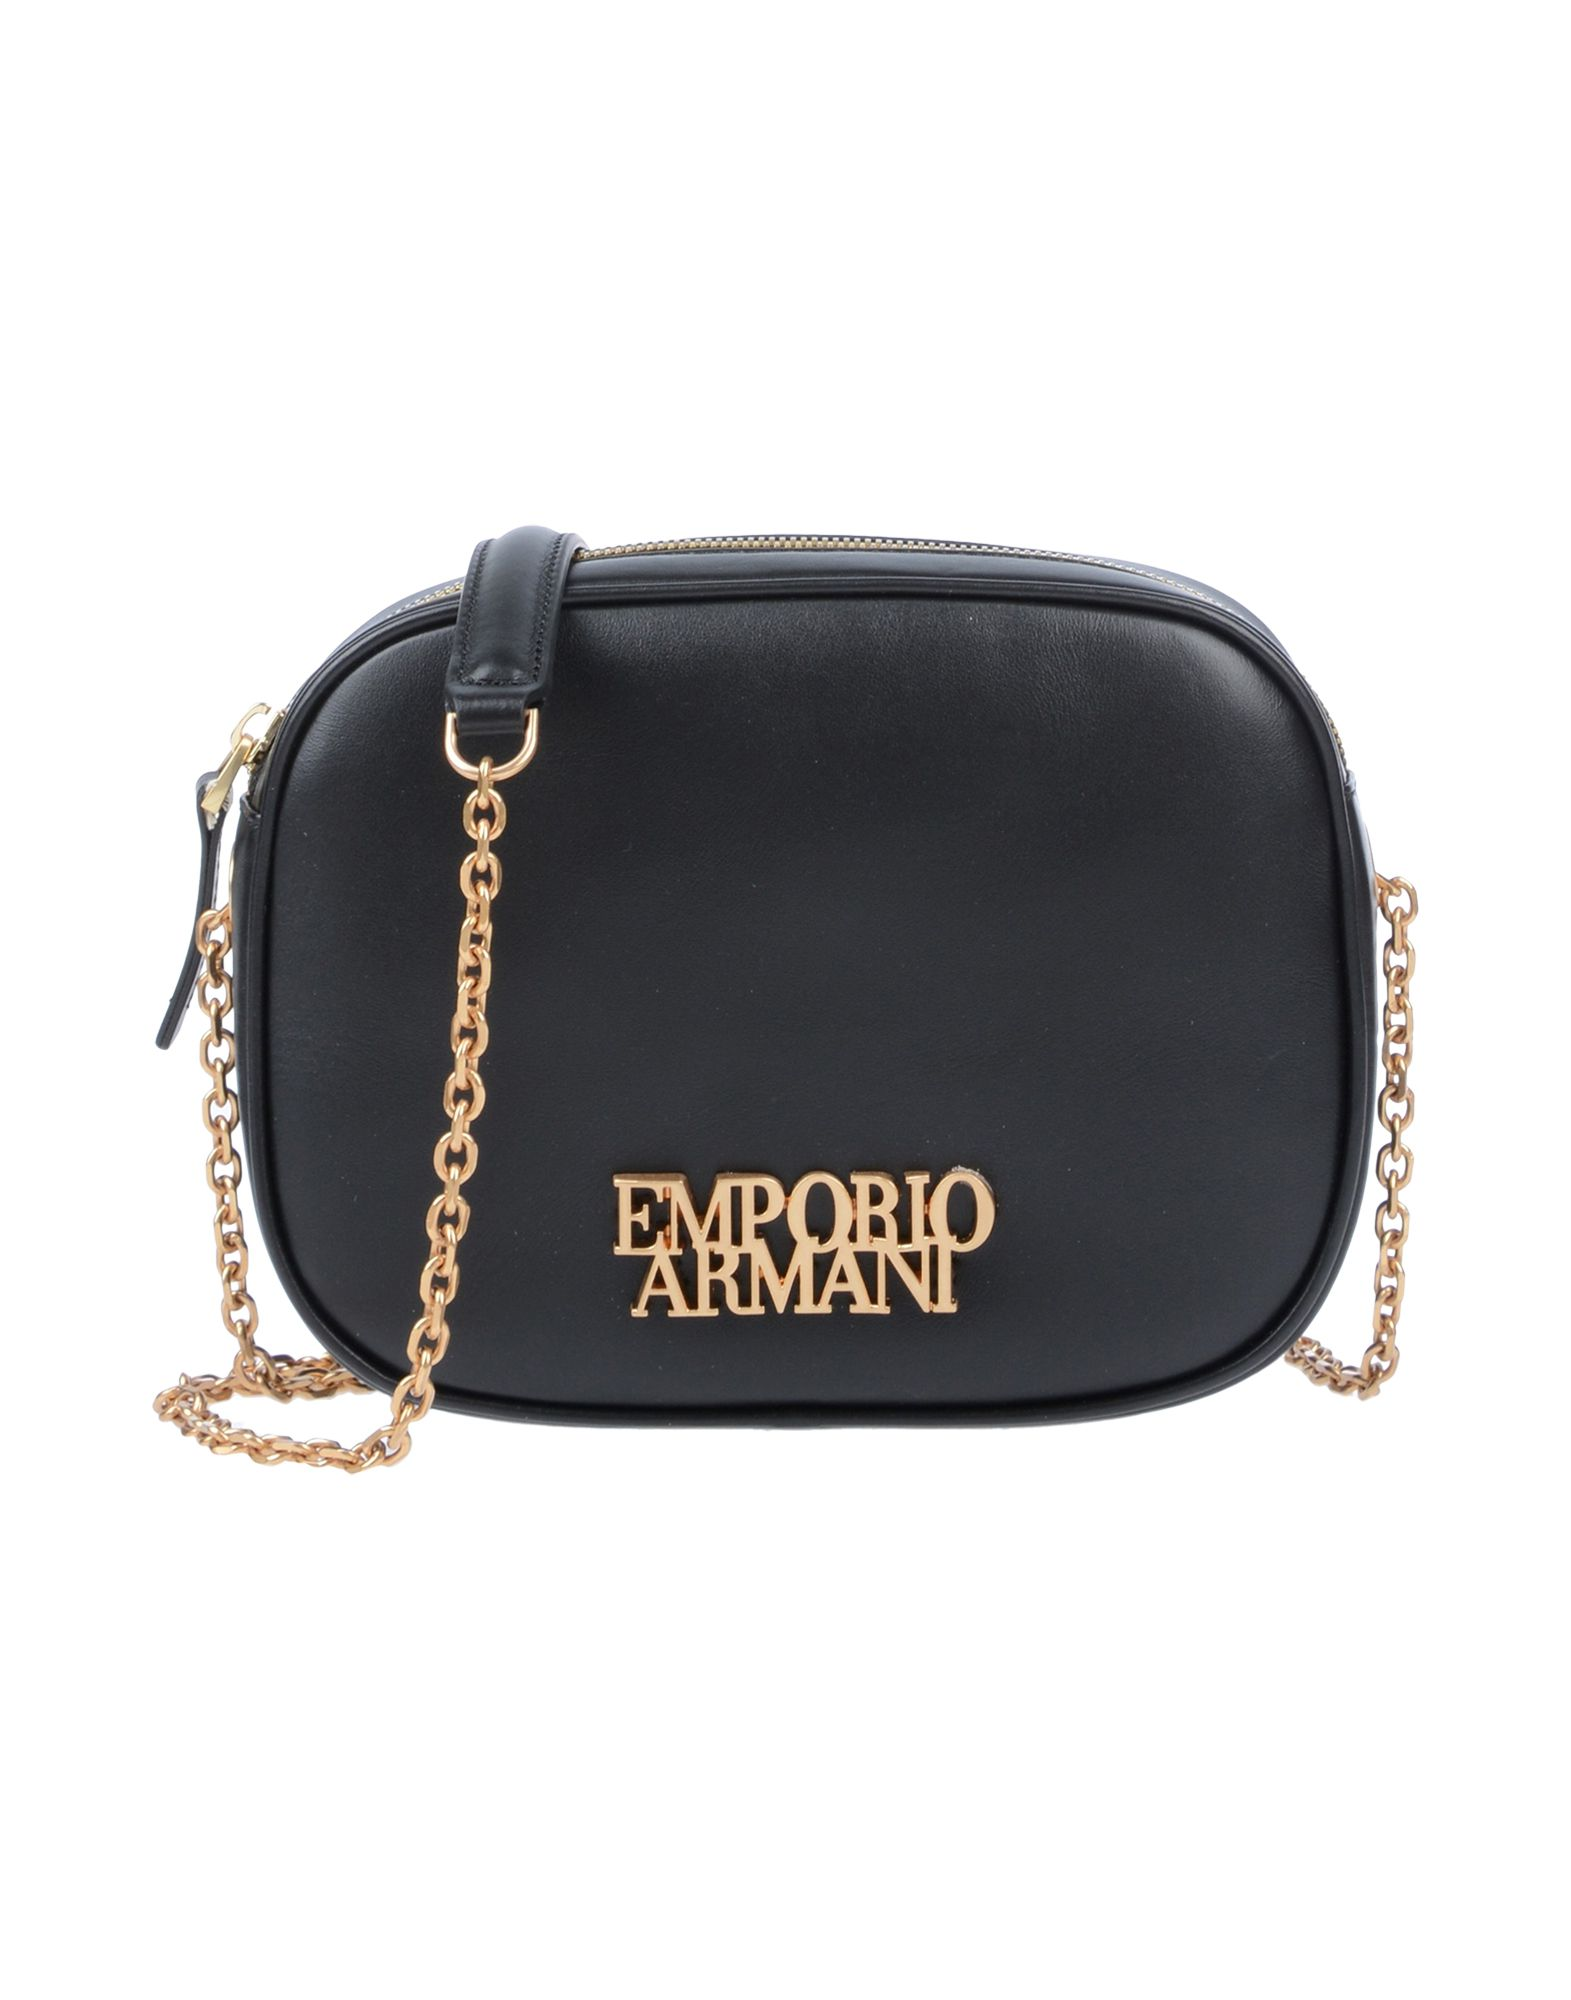 check out f1079 9f94d エンポリオアルマーニ(EMPORIO ARMANI) ショルダーバッグ | 通販 ...